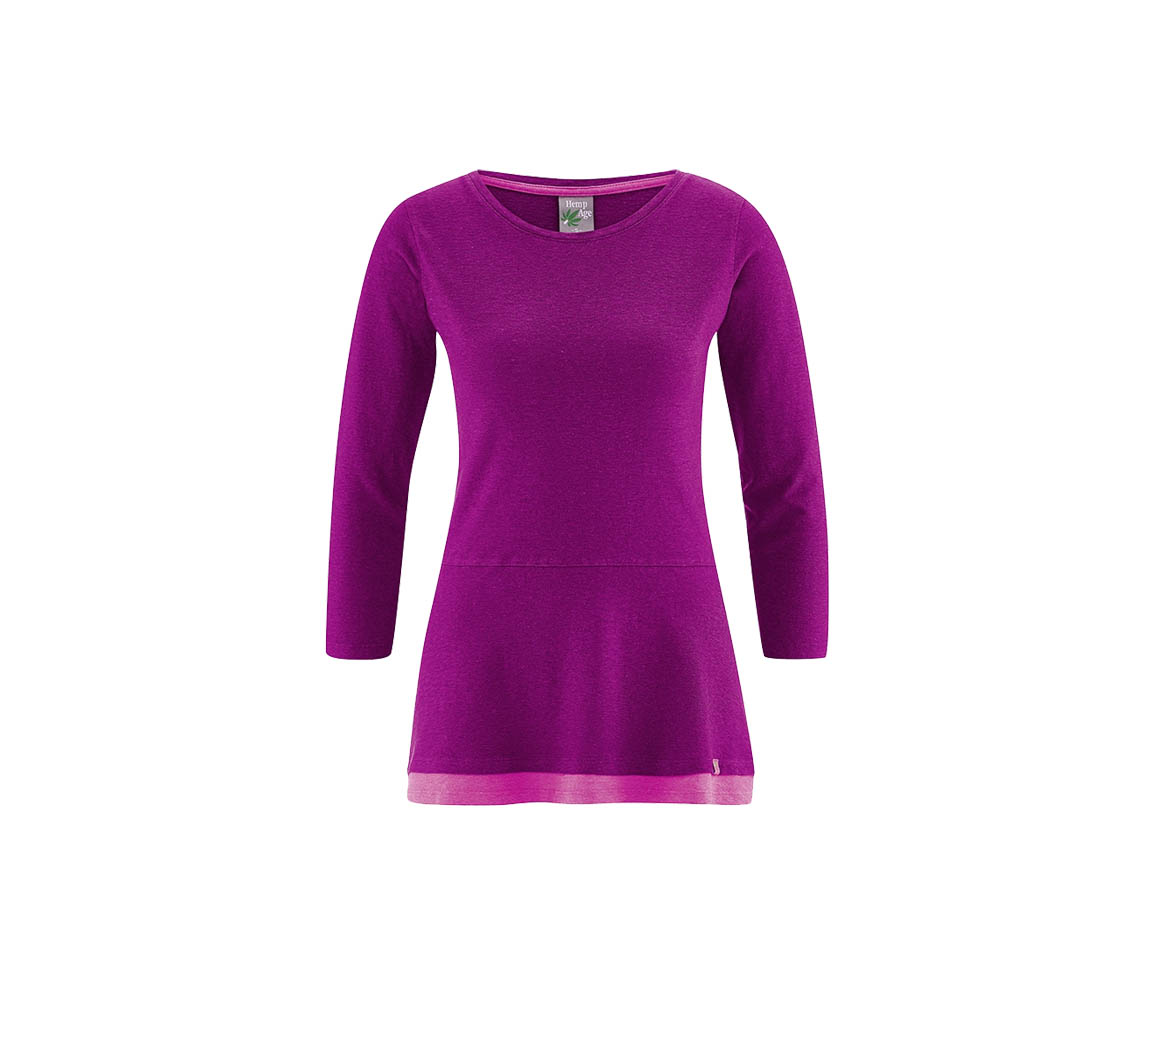 Vêtement femme en chanvre Long shirt Ida